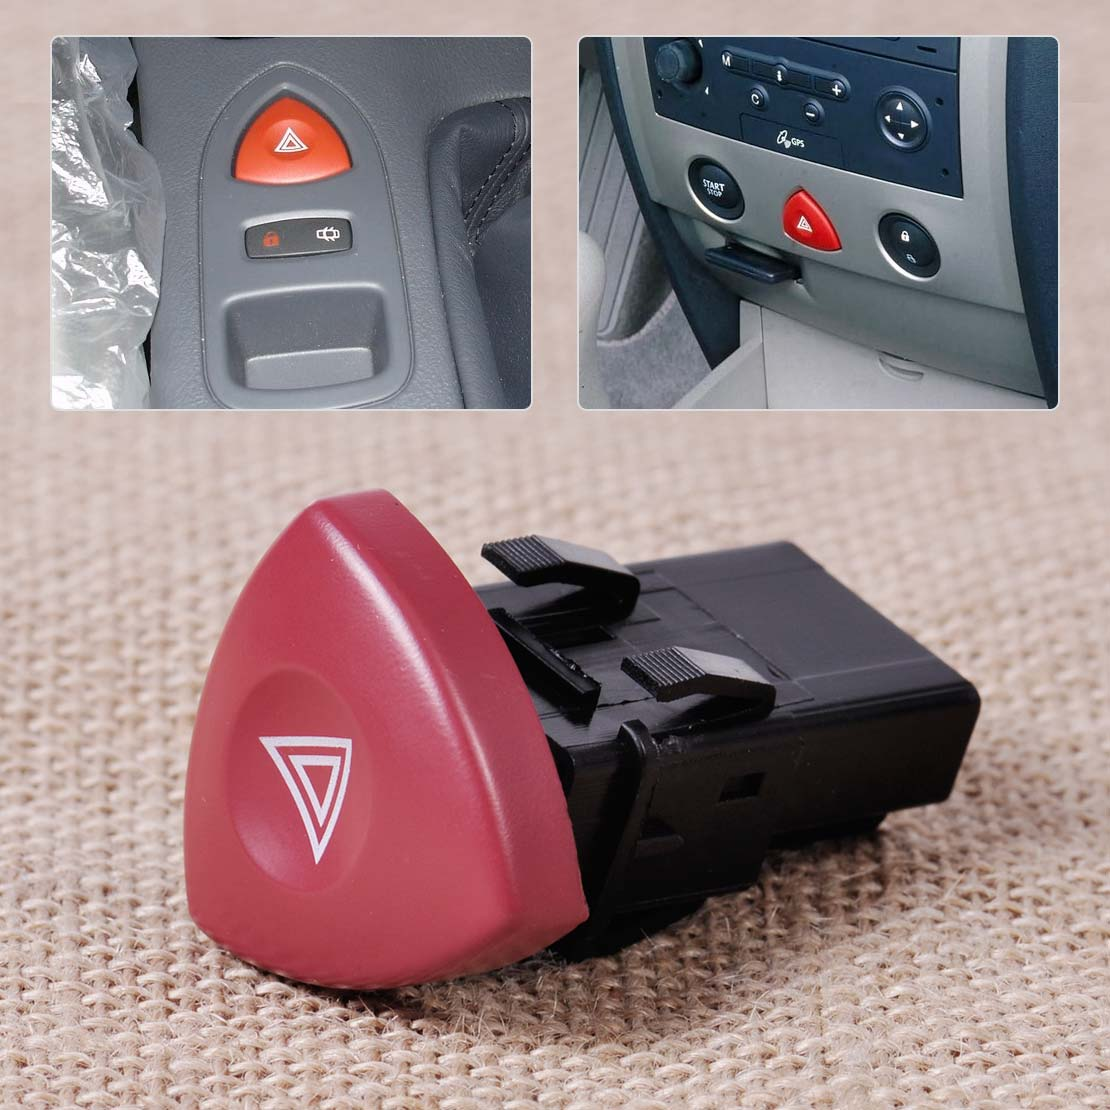 CITALL Hazard Warning Light Switch Dash Button 8200442724 93856337 for Renault Espace Laguna Nissan Primastar Vauxhall Vivaro